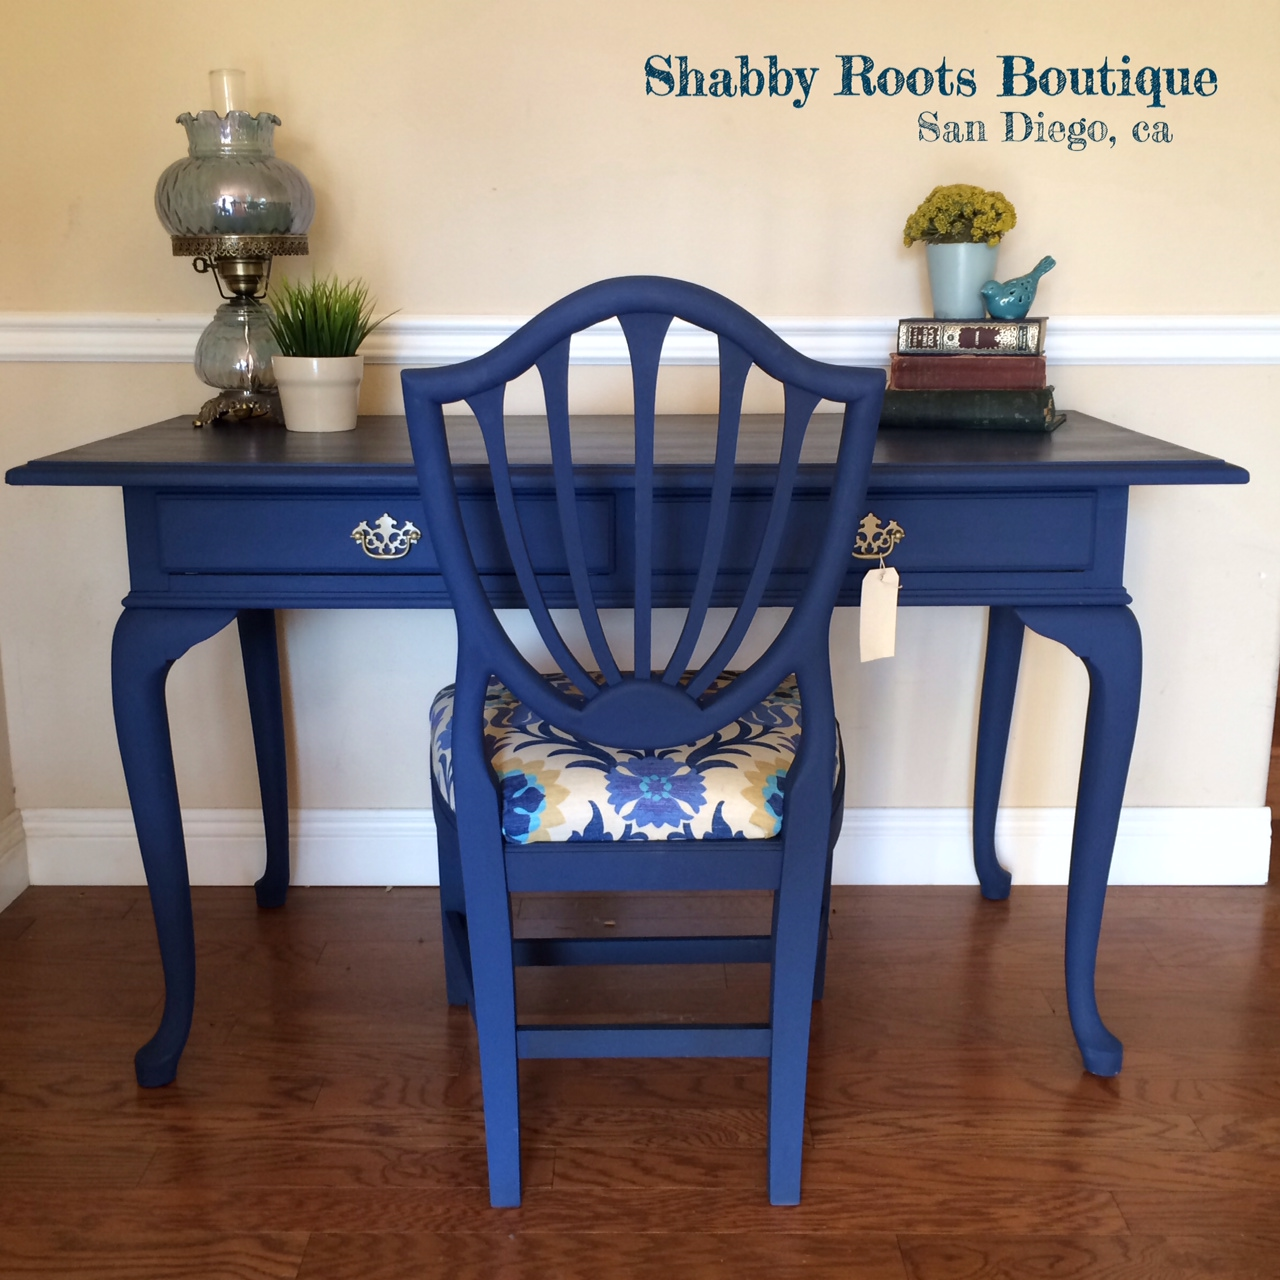 painted queen anne sofa table uk sofas cobalt blue desk and chair shabby roots boutique bluedesk1